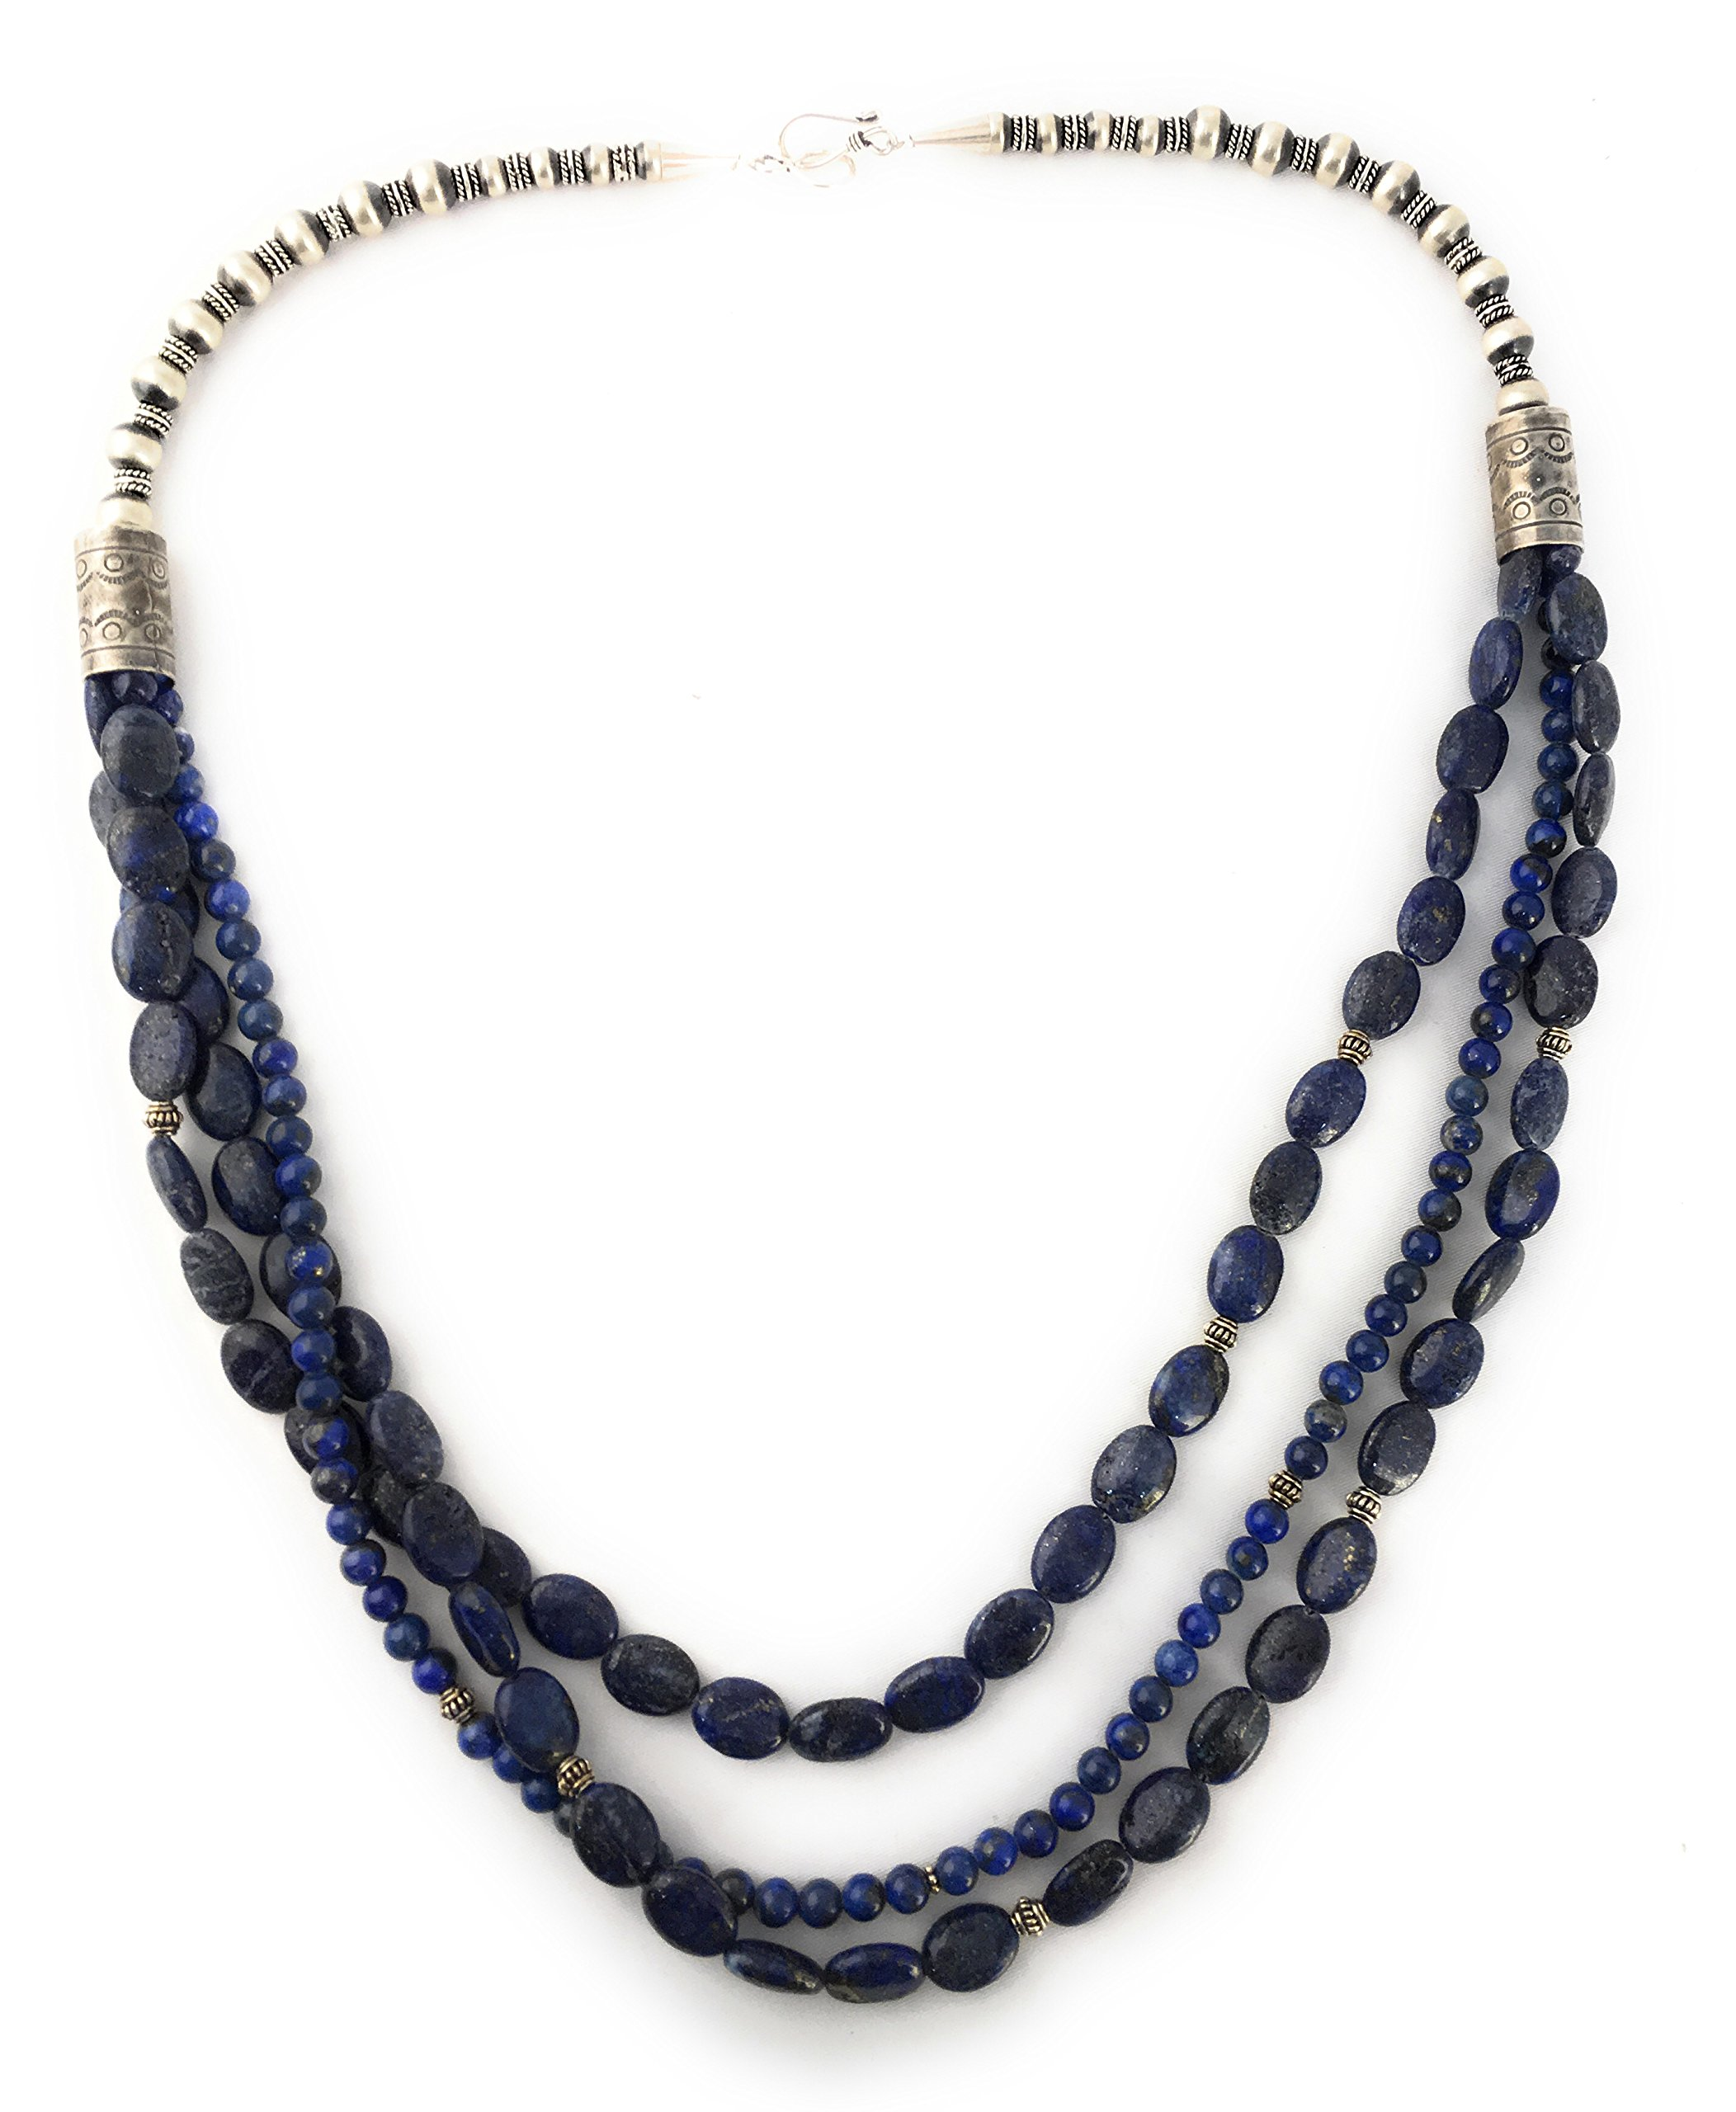 Masha Storewide Sale ! Sterling Silver Necklace By Lapis Lazulli, Made in USA - Exclusive Southwestern Handmade Jewelry, Gift